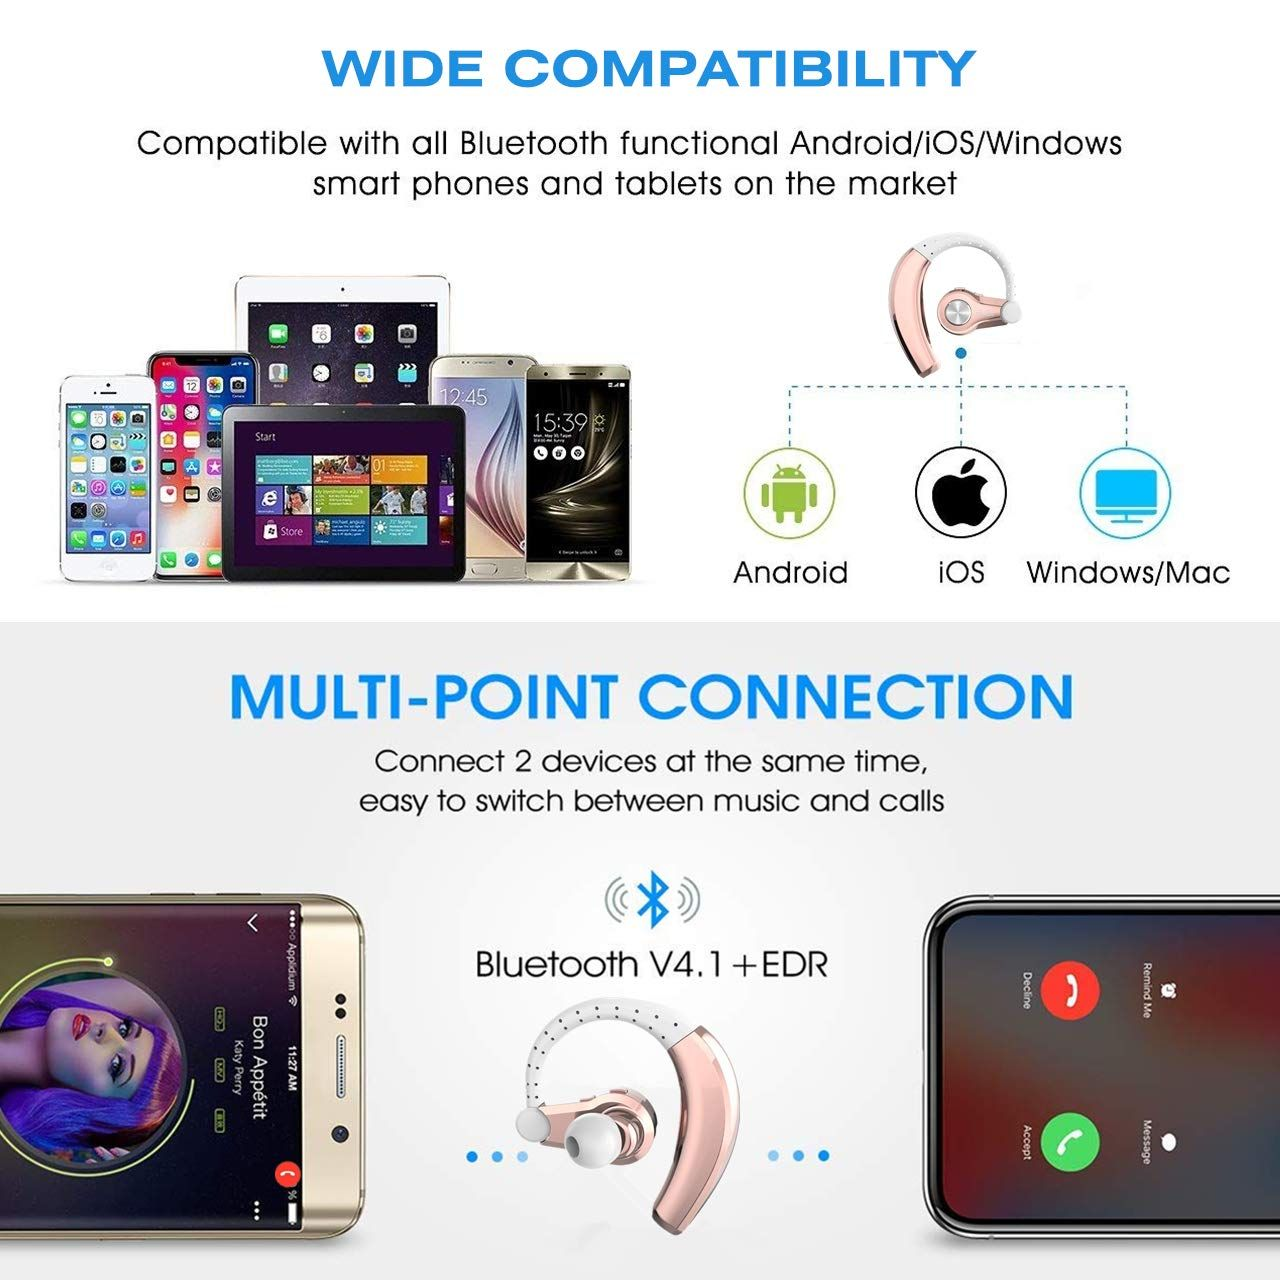 Bluetooth Headset Ponybro Bluetooth Earbuds With Mic Voice Reminder Caller Id Hd Sound In Ear Earphones Bluetooth Earpiece Bluetooth Earbuds Earbuds With Mic